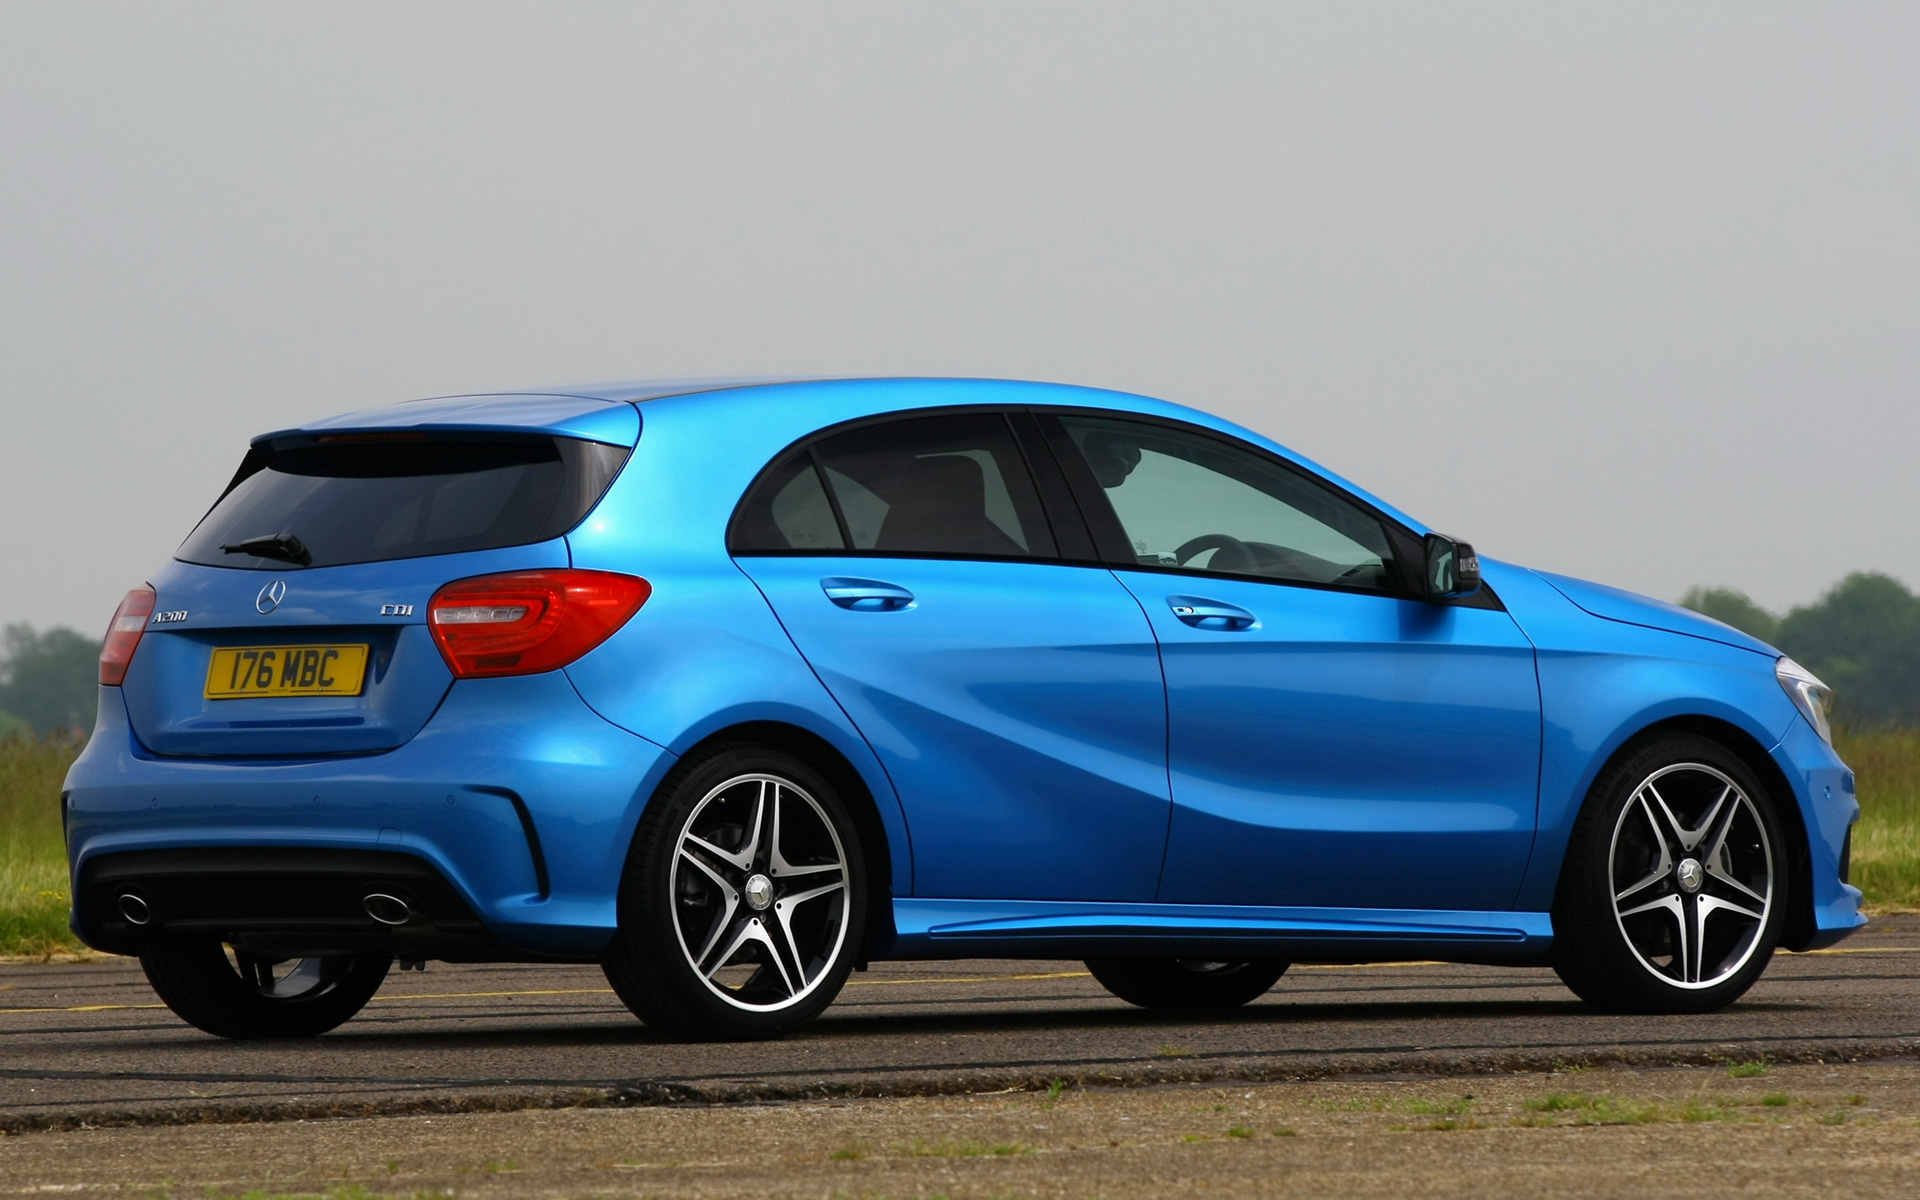 2012 mercedes benz a class amg sport uk wallpapers and. Black Bedroom Furniture Sets. Home Design Ideas